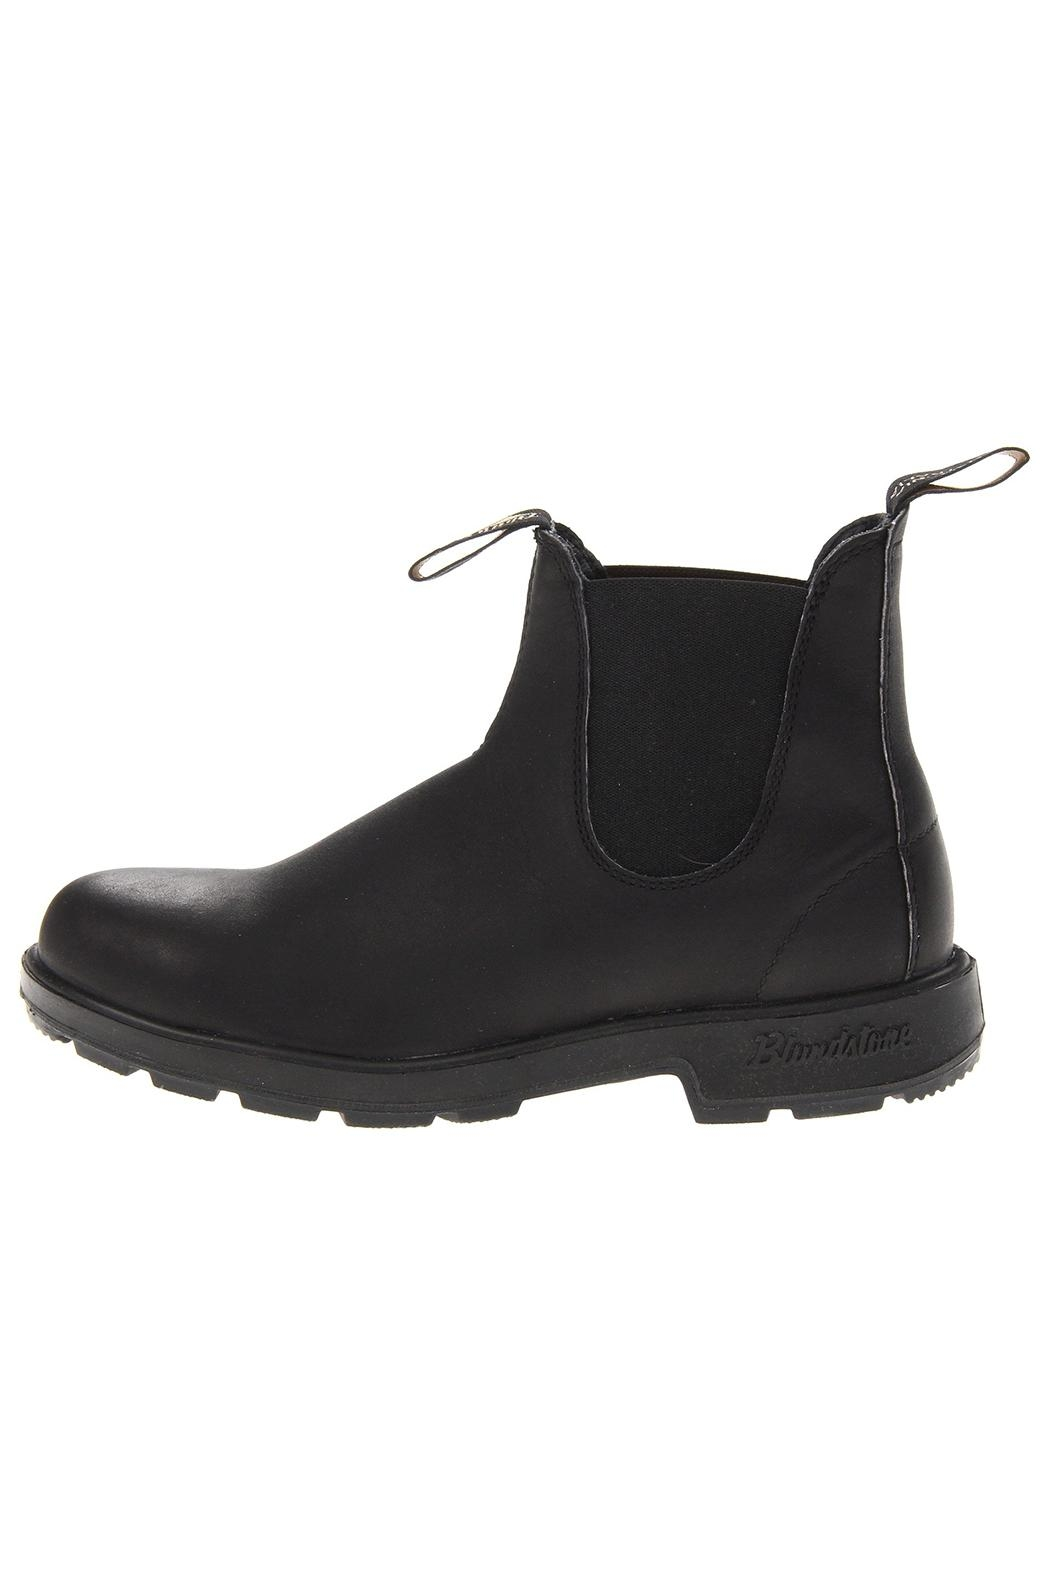 fca22e019887 Blundstone 500 Classic Boot from New Jersey by ROXY SHOES — Shoptiques